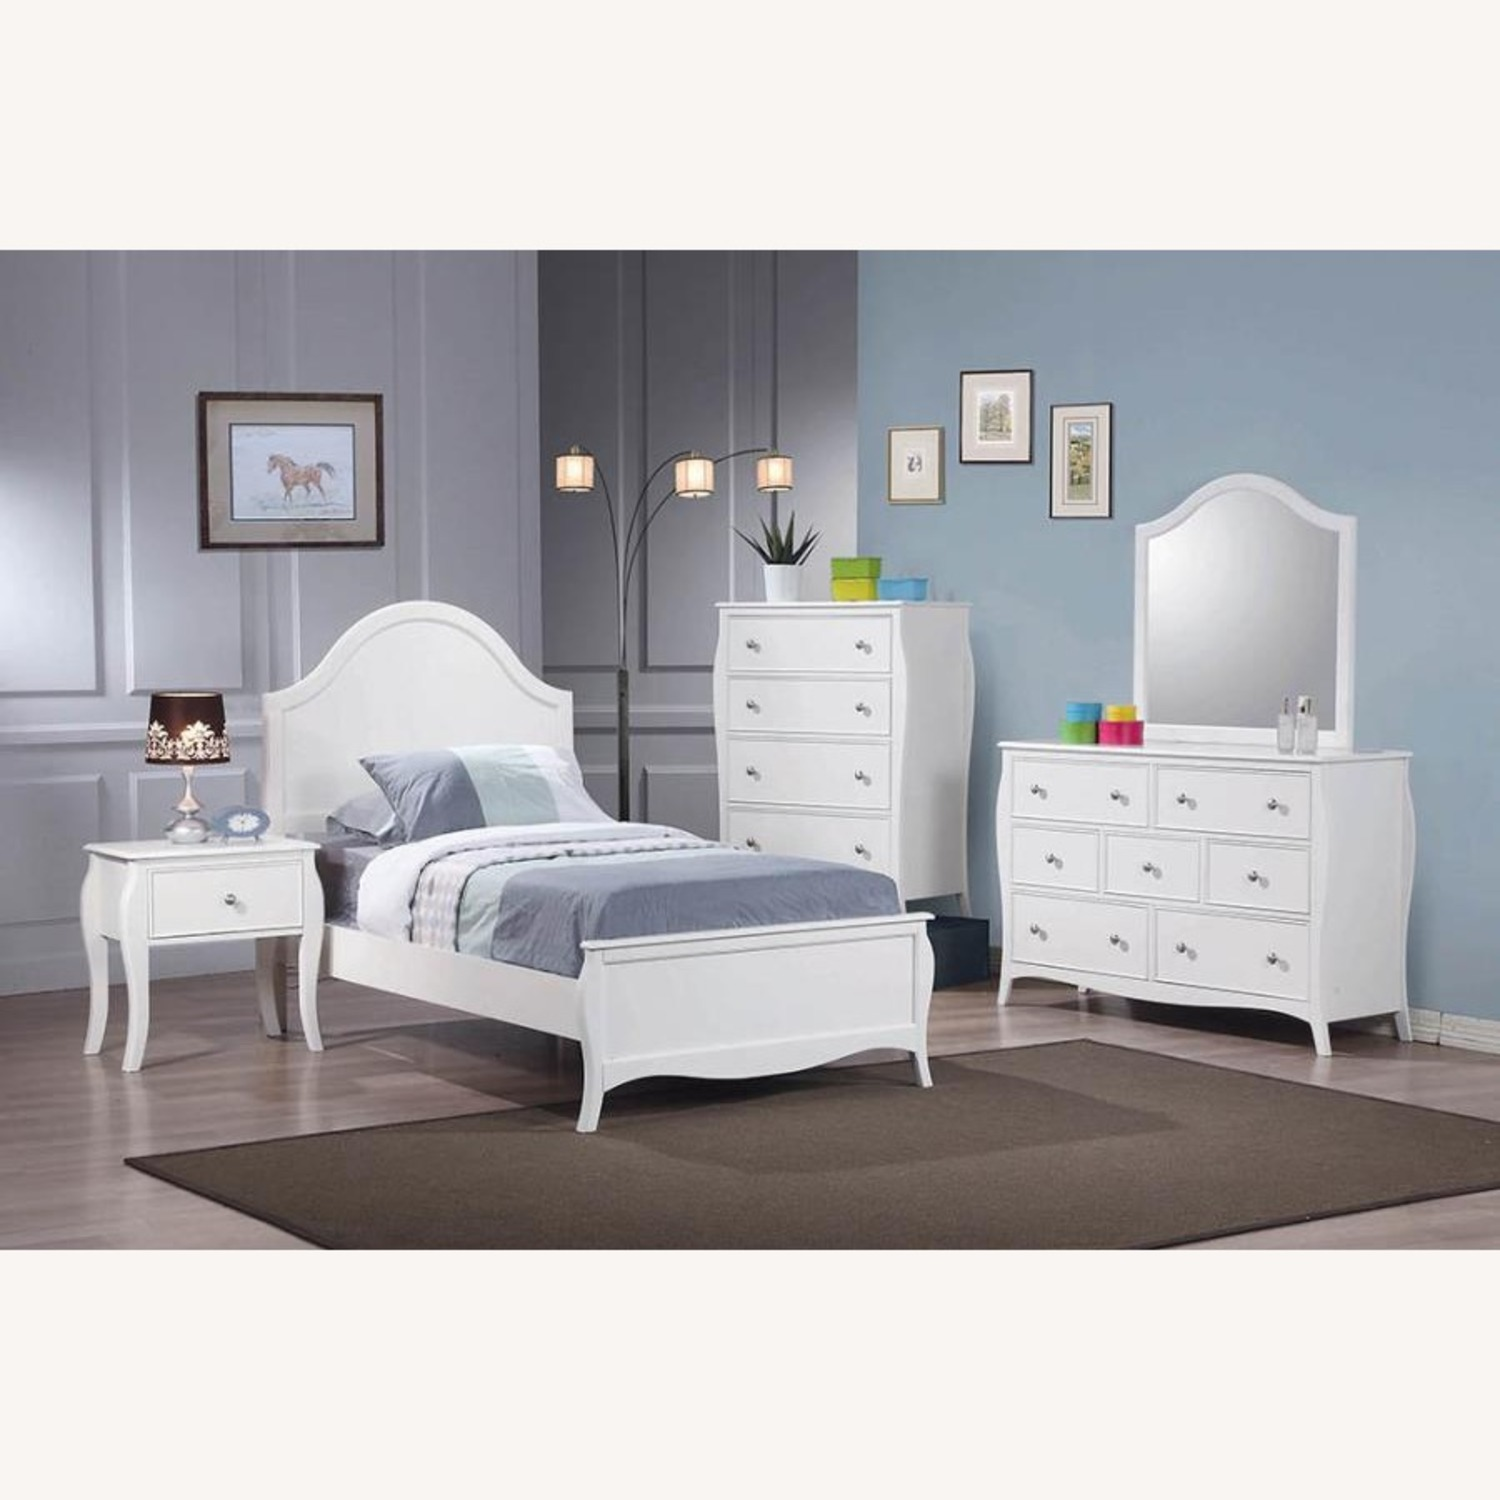 Full Bed In White Finish W/ Arched Headboard - image-2